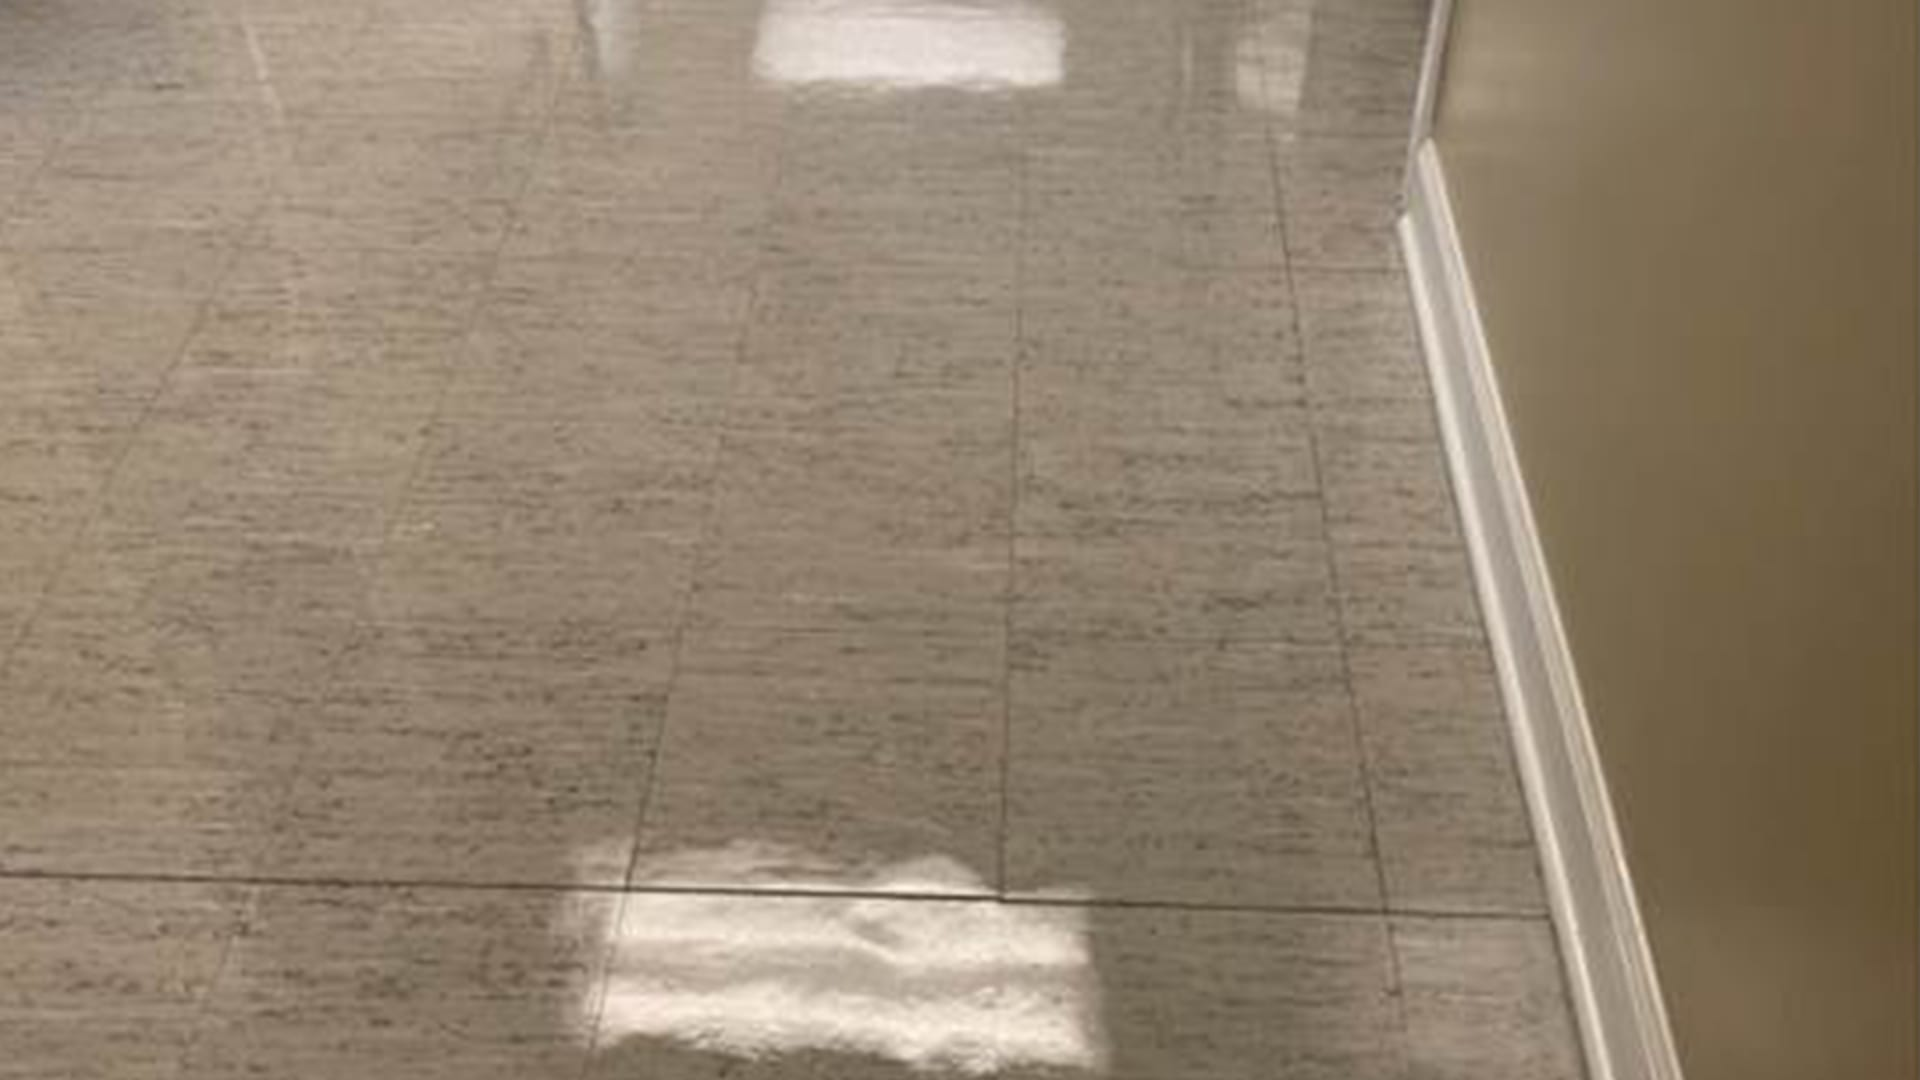 Clean and tidy vct tiles